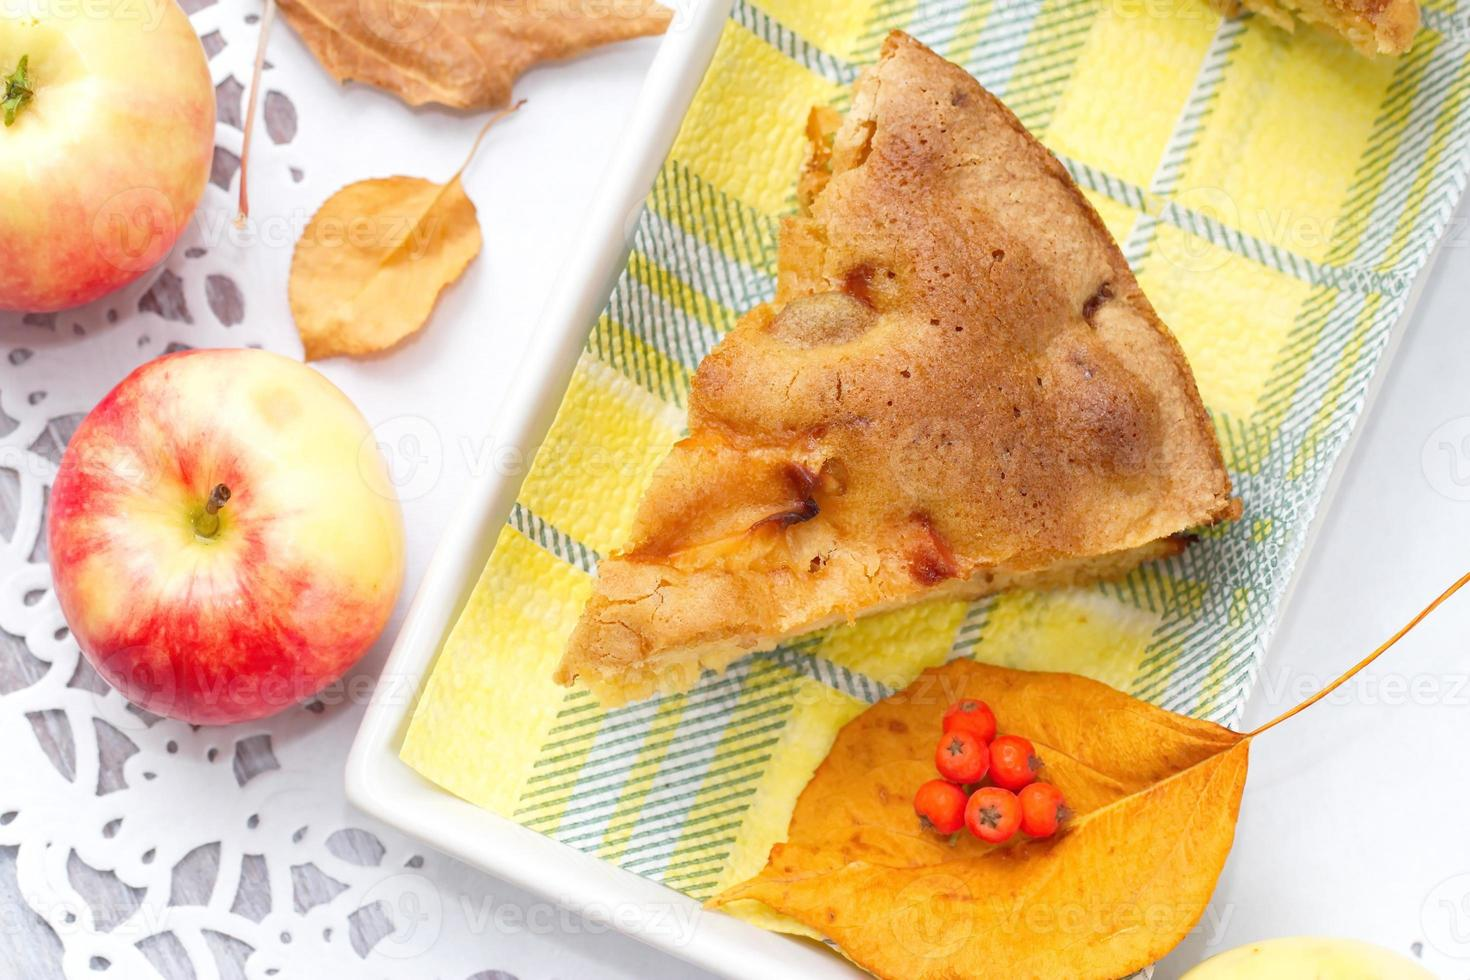 Apple pie and fresh apples photo